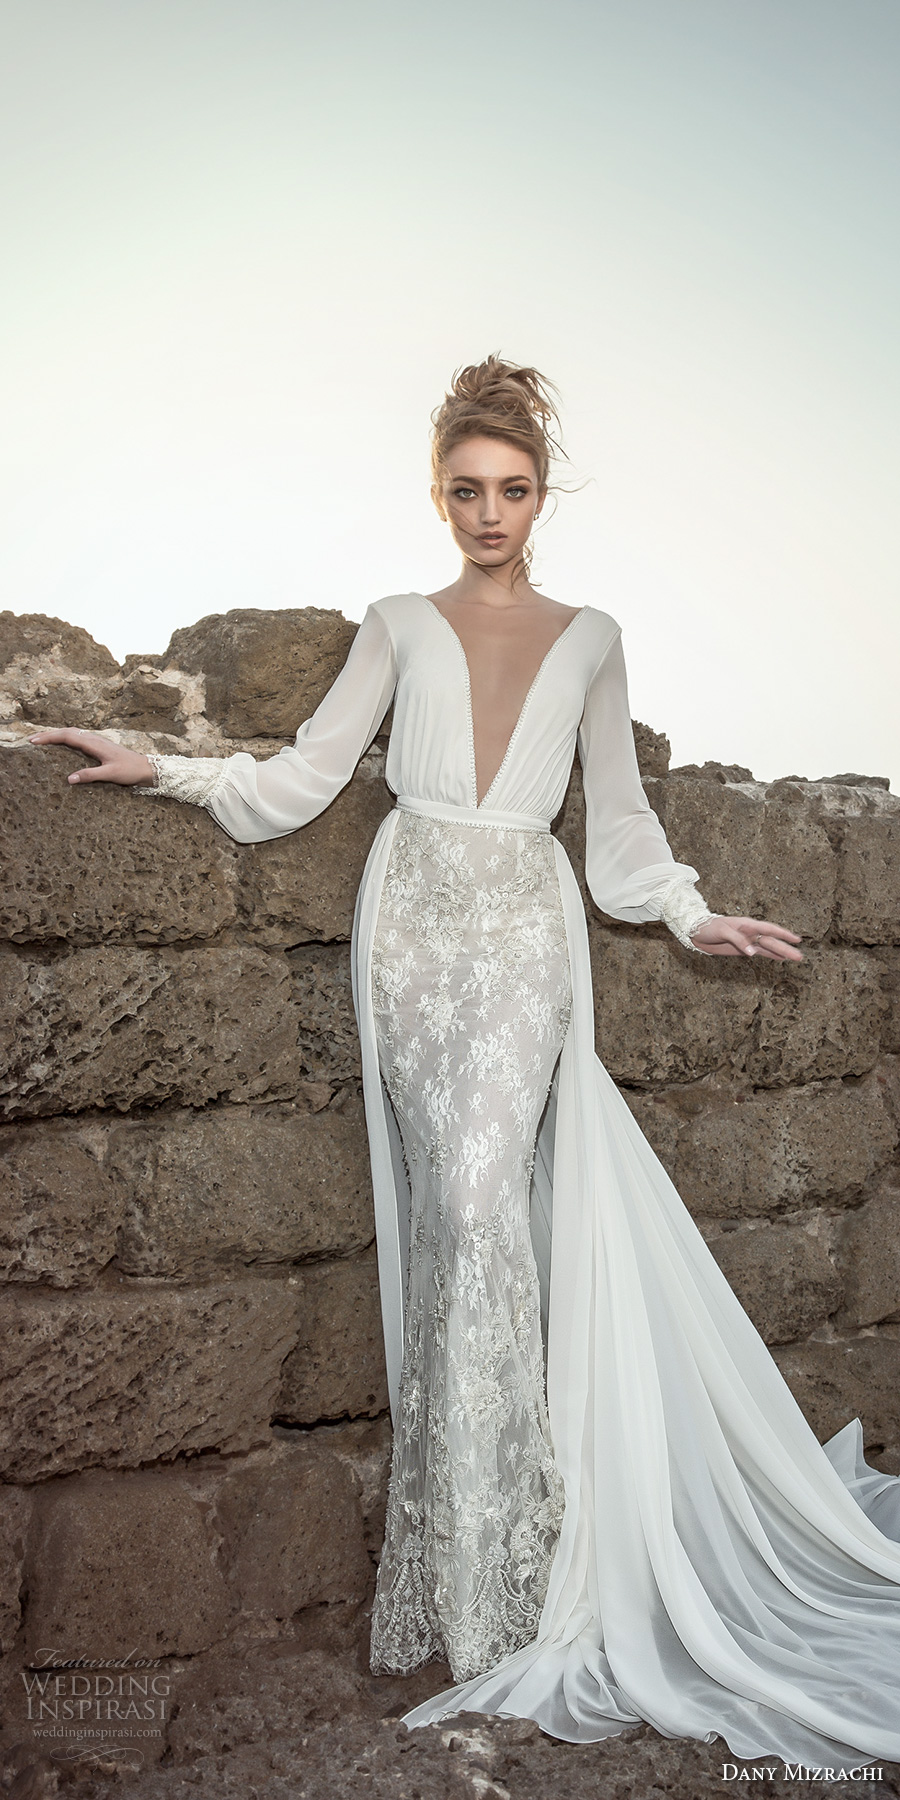 dany mizrachi 2018 bridal long bishop sleeves deep plunging v neck heavily embellished skirt elegant sexy fit and flarew wedding dress a line overskirt open v back chapel train (17) mv